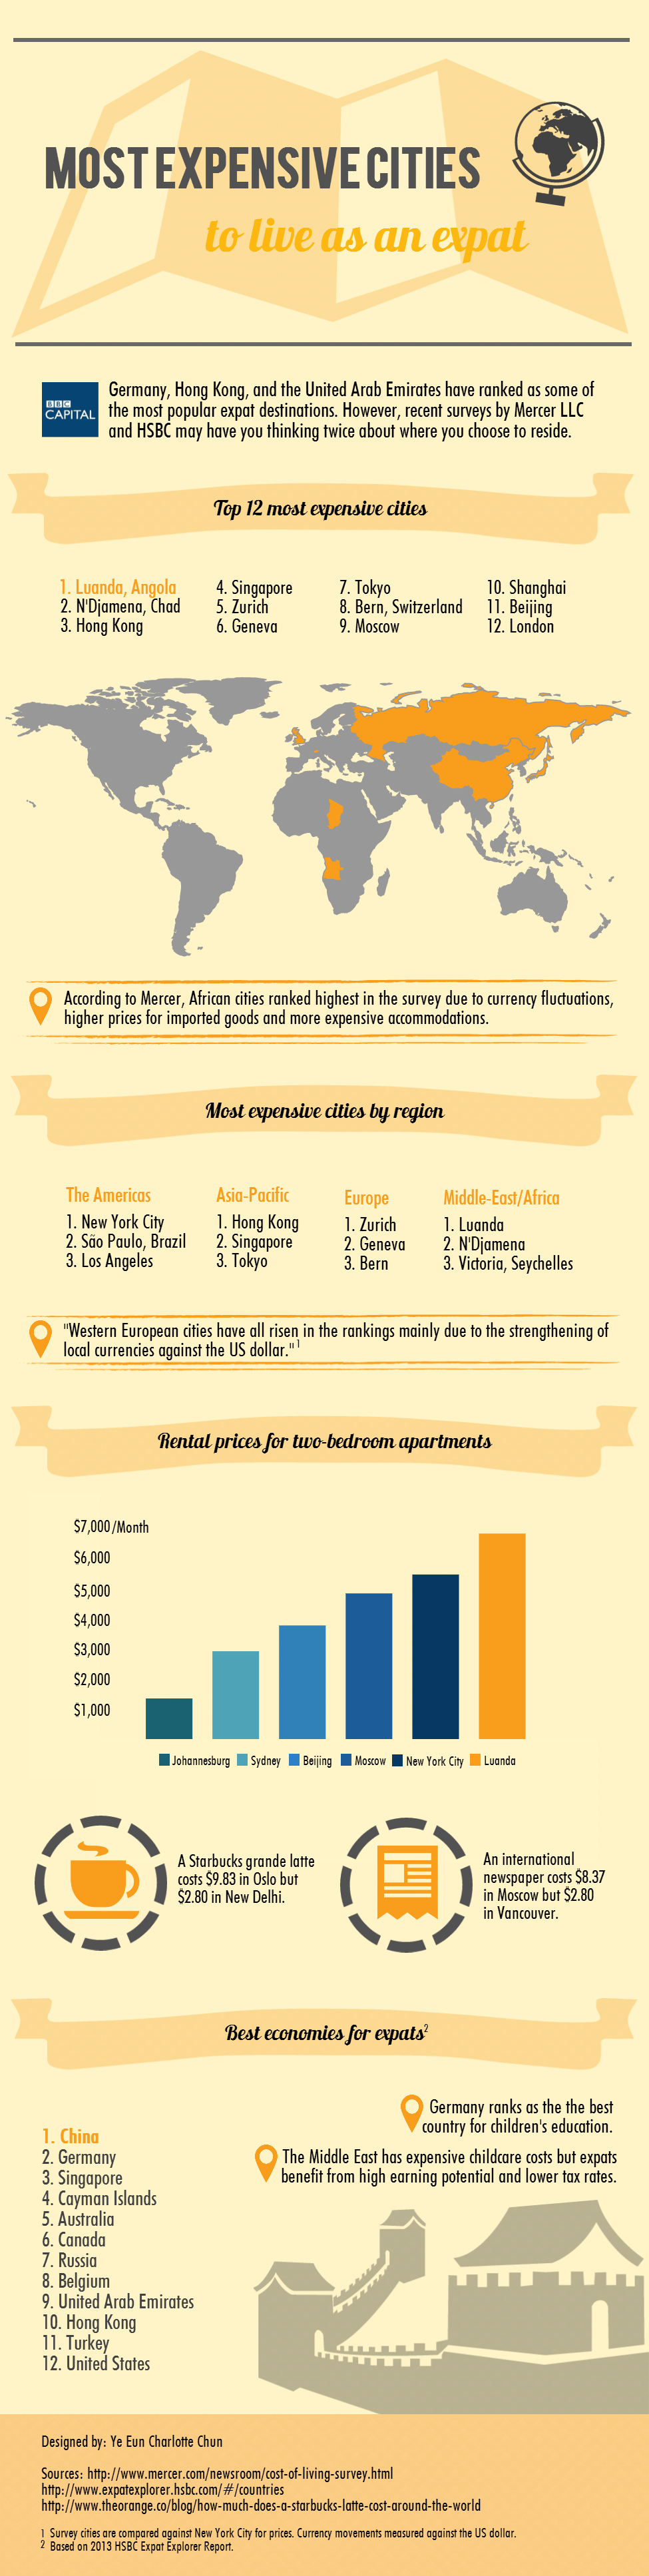 most-expensive-cities